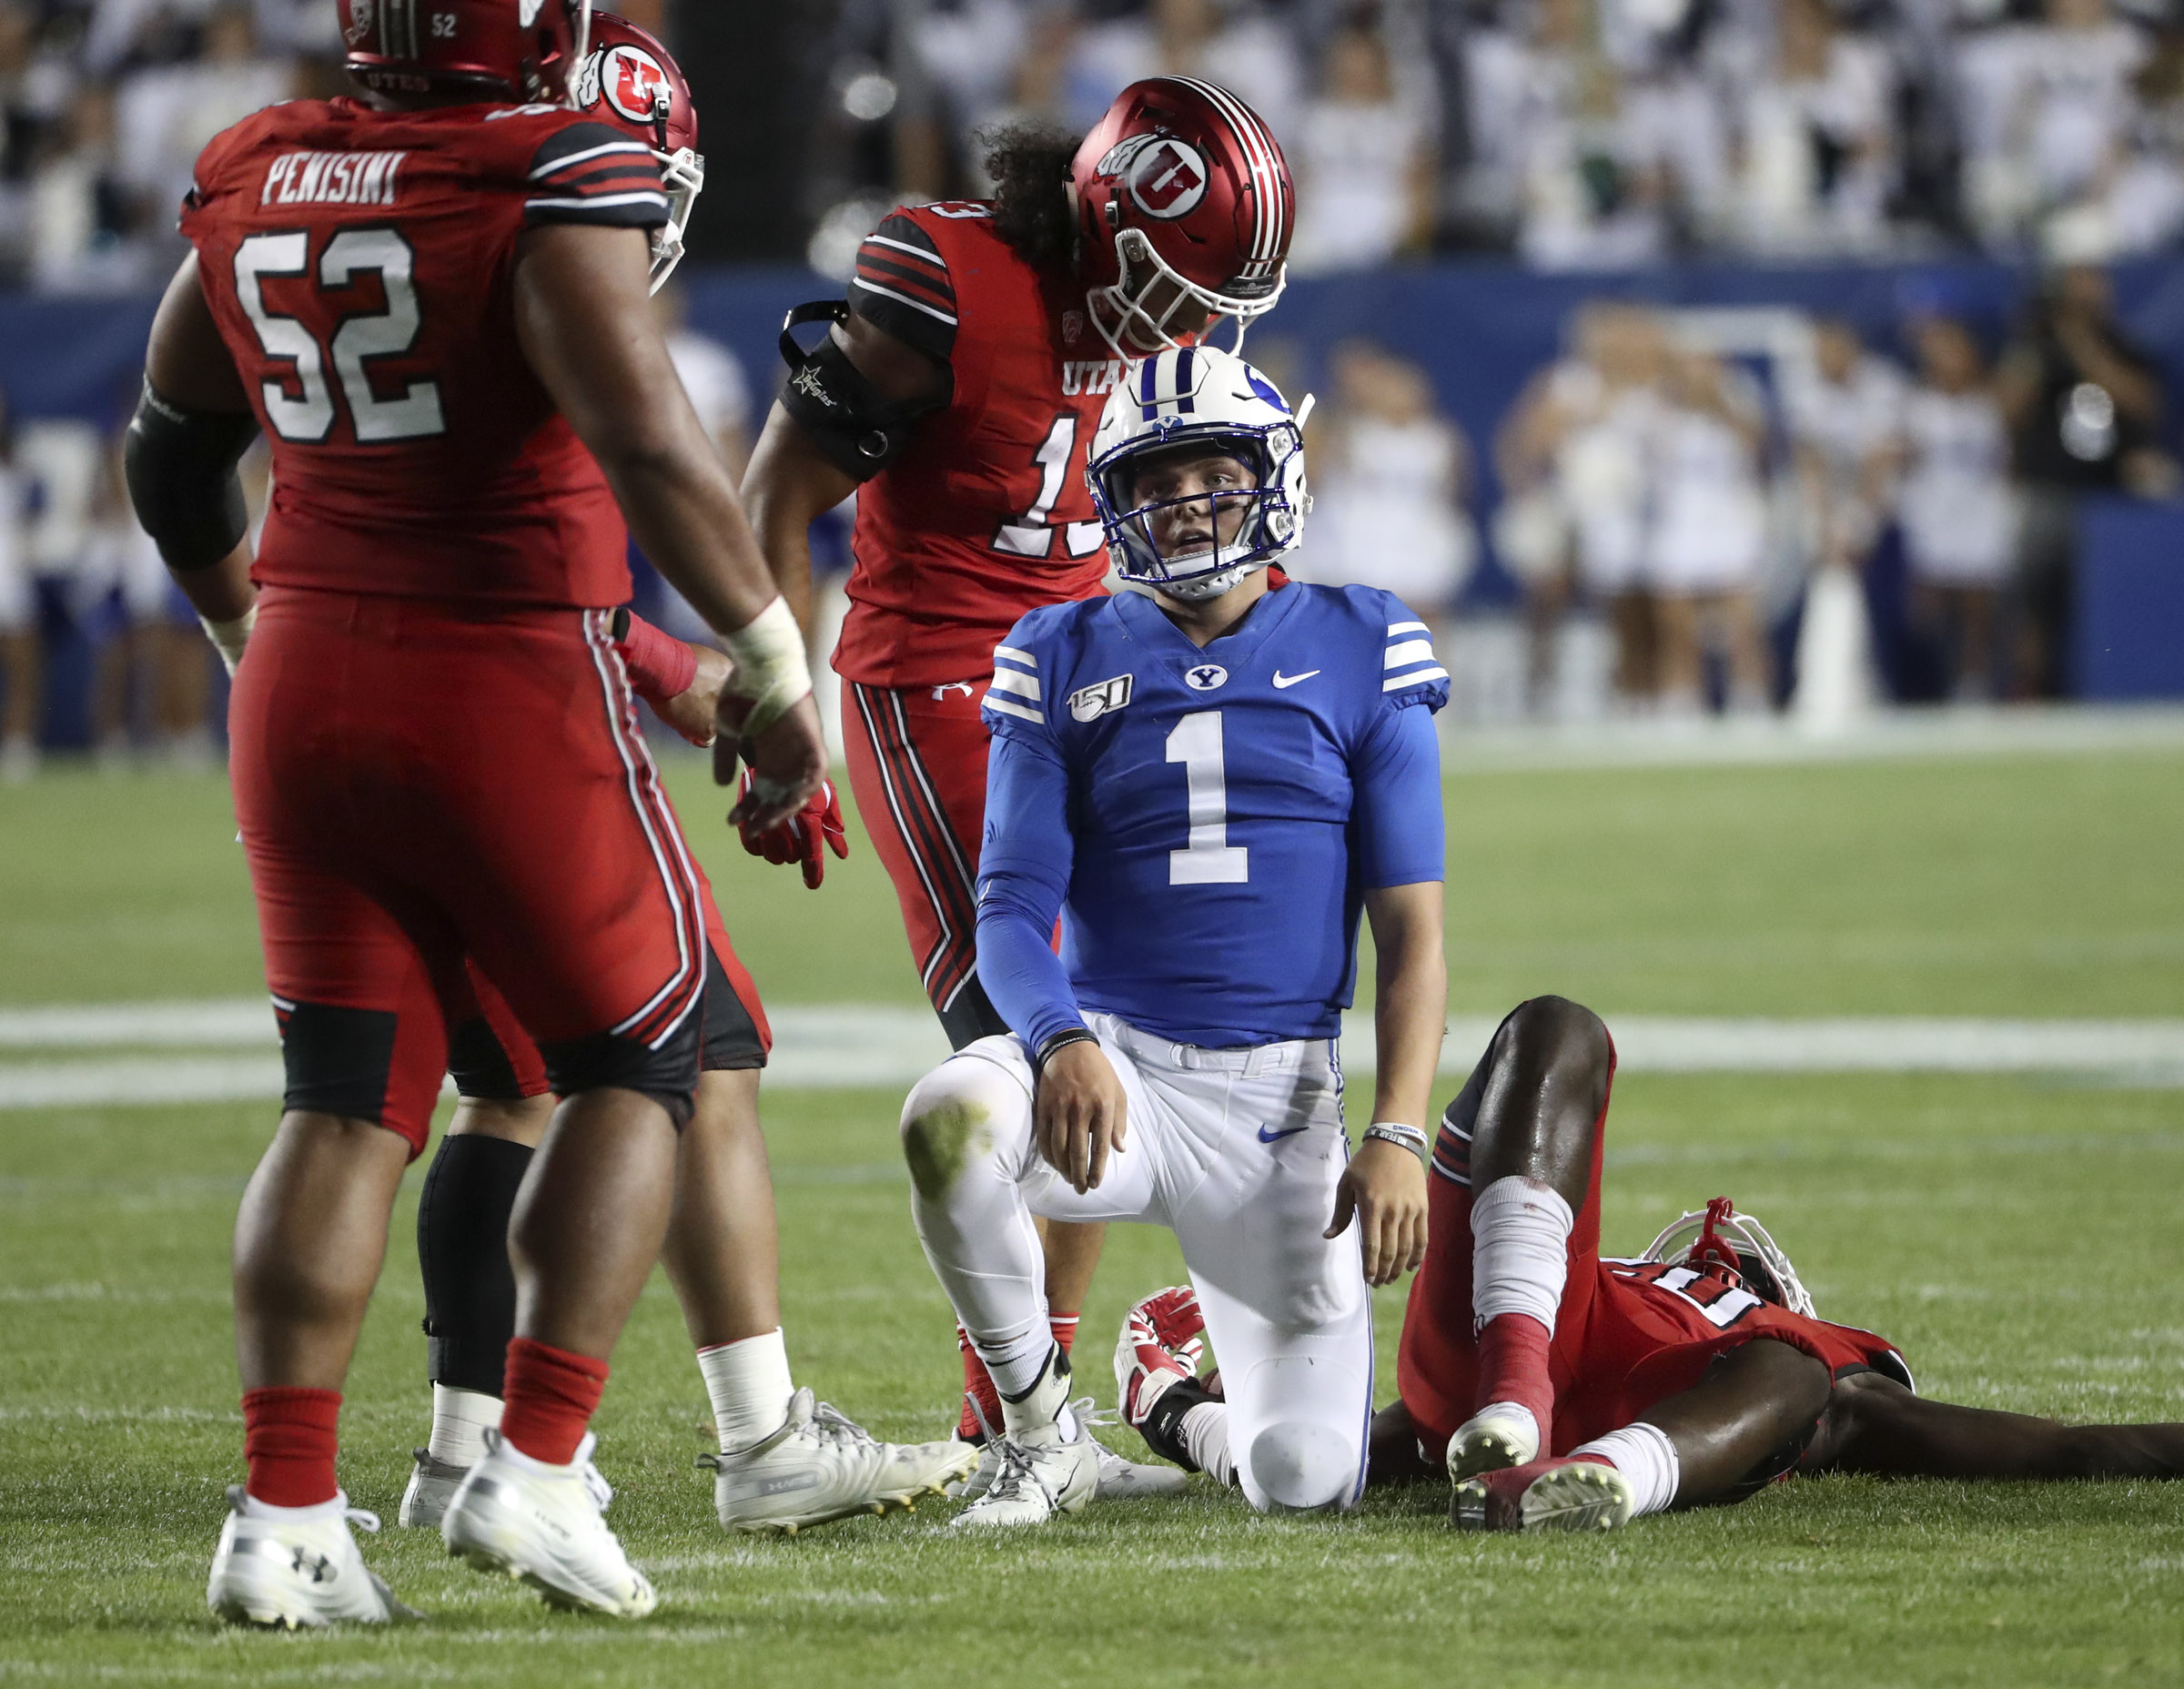 Brigham Young Cougars quarterback Zach Wilson shrugs after a snap sailed over his head on a two-point conversion try during second half action in the University of Utah at BYU football game at LaVell Edwards Stadium in Provo on Thursday, Aug. 29, 2019.